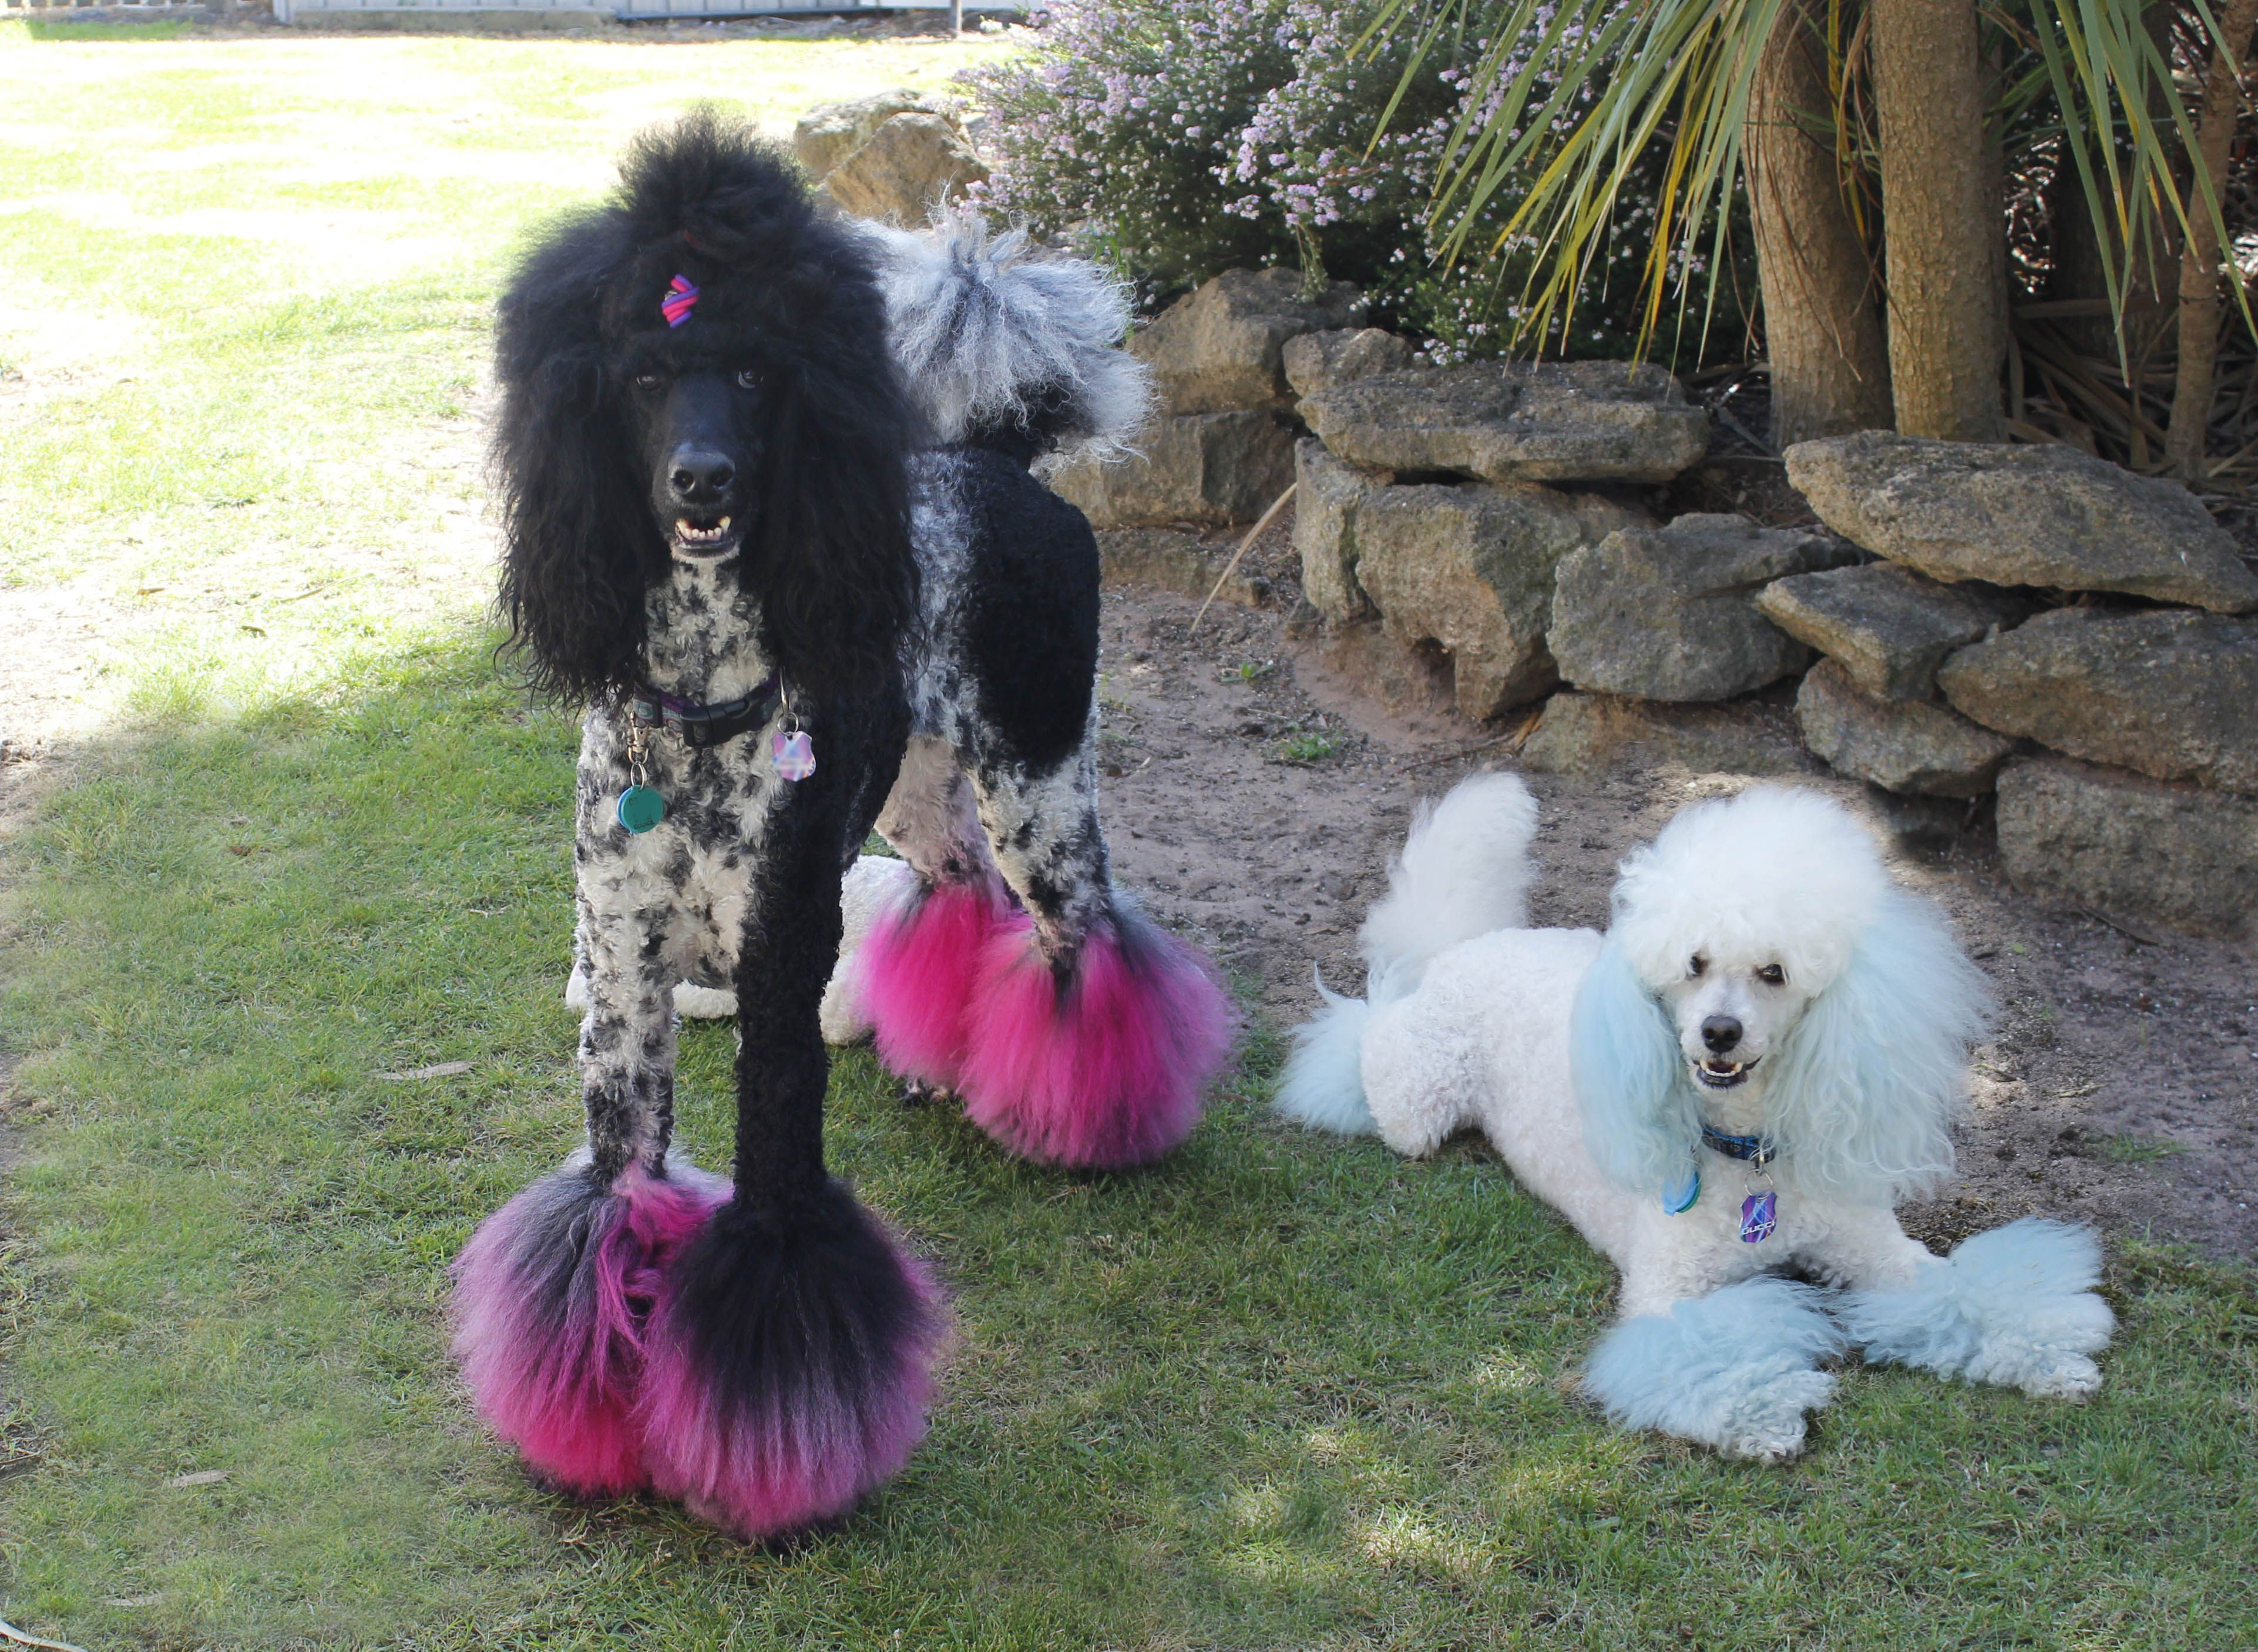 Dolce And Gucci Dolce Is A Standard Parti Poodle And Gucci Is A